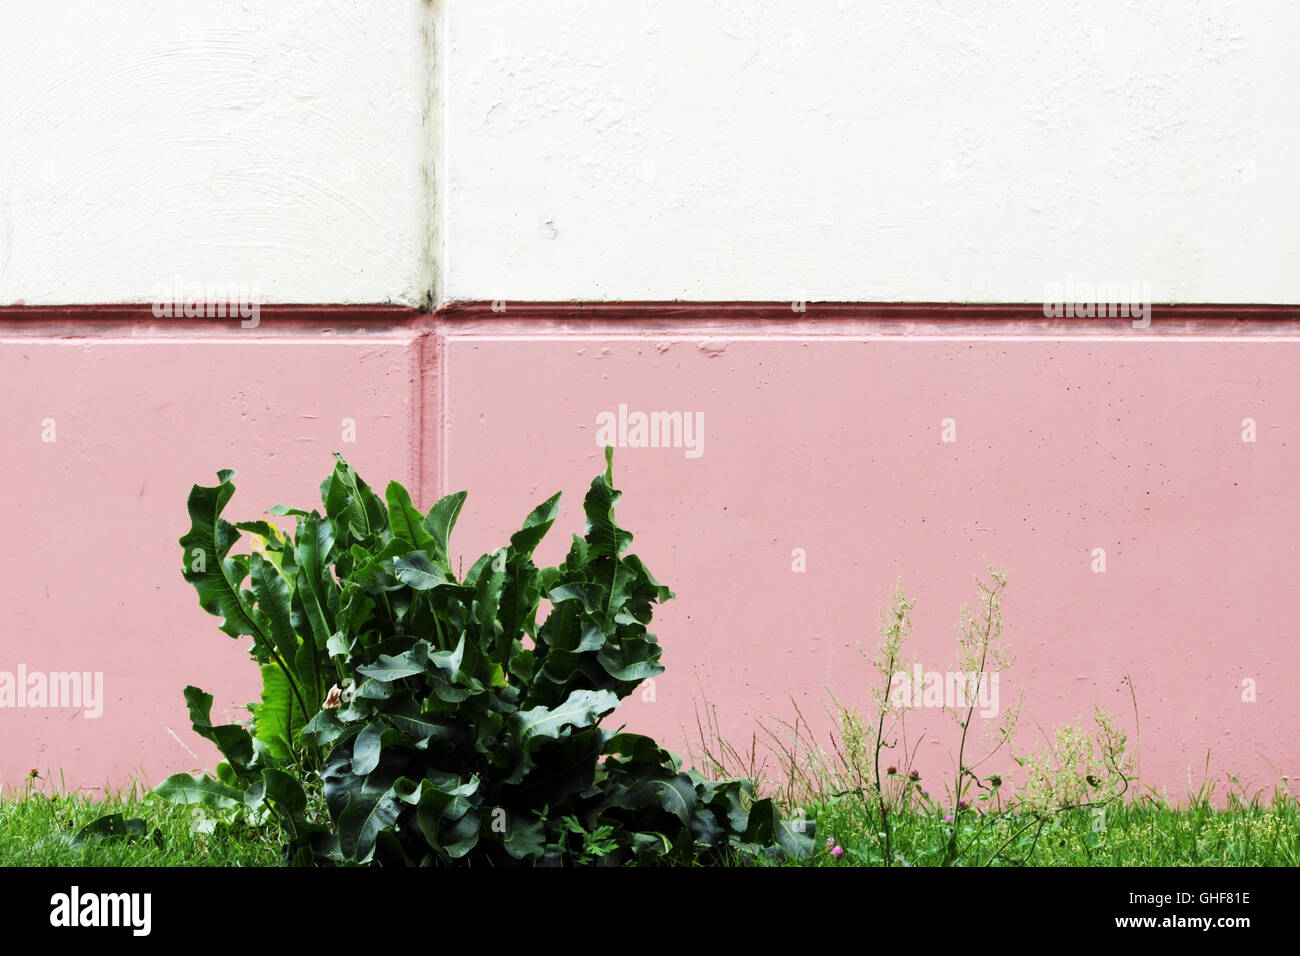 Cochlearia armoracia, Horseradish against the background of the walls painted in white and pink paint. - Stock Image